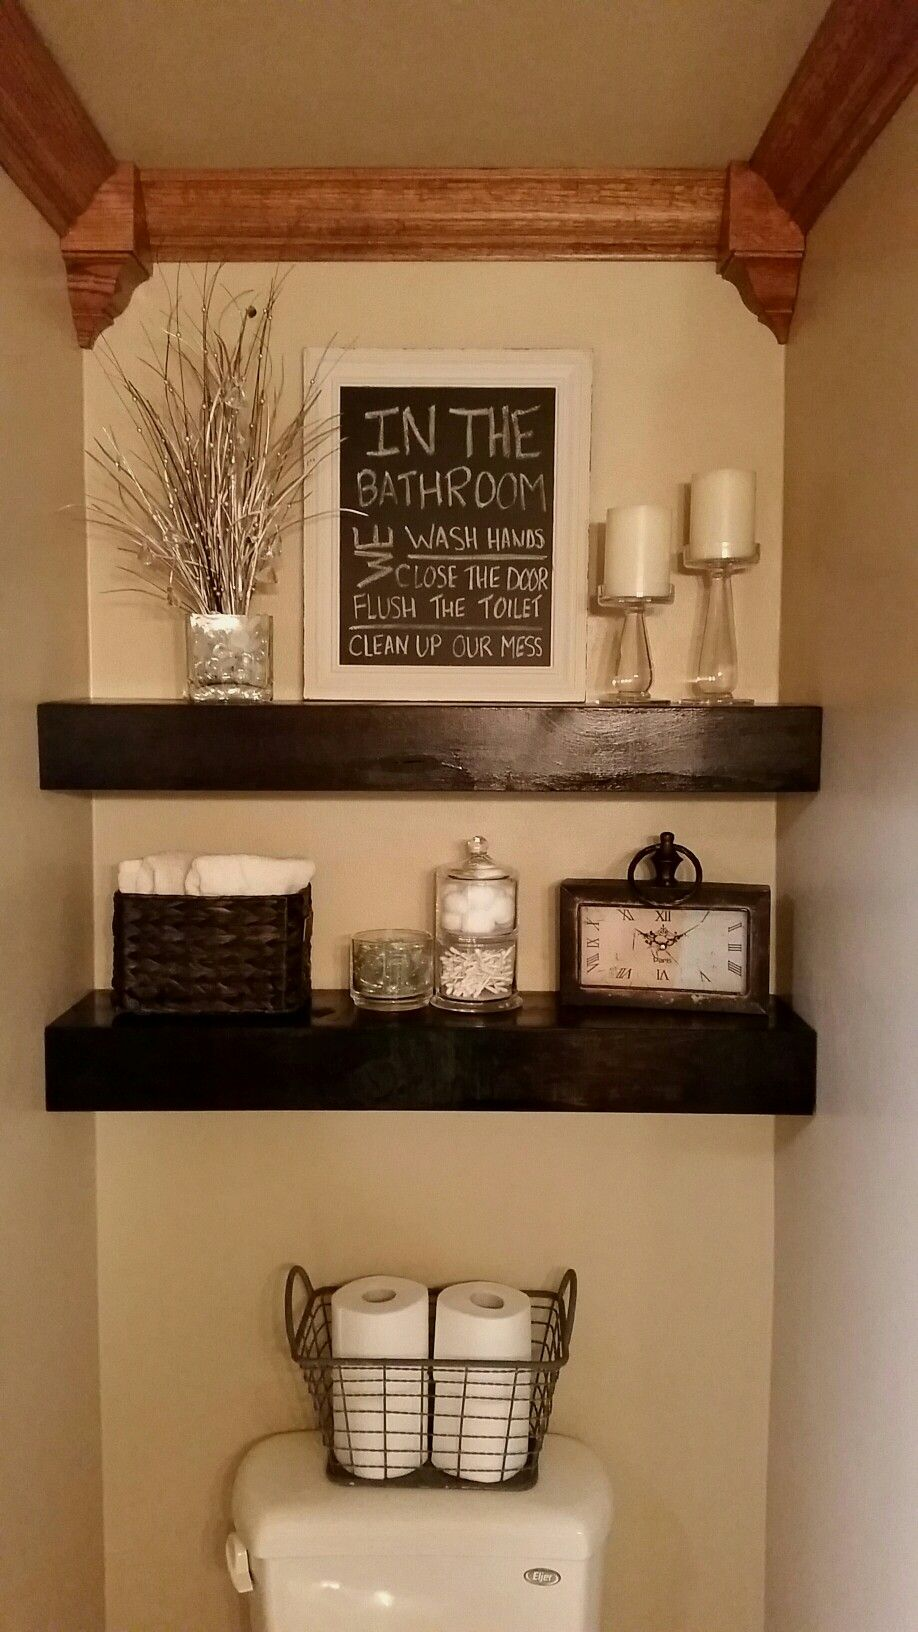 Pin by Kelly Saltou on house decorations Bathroom